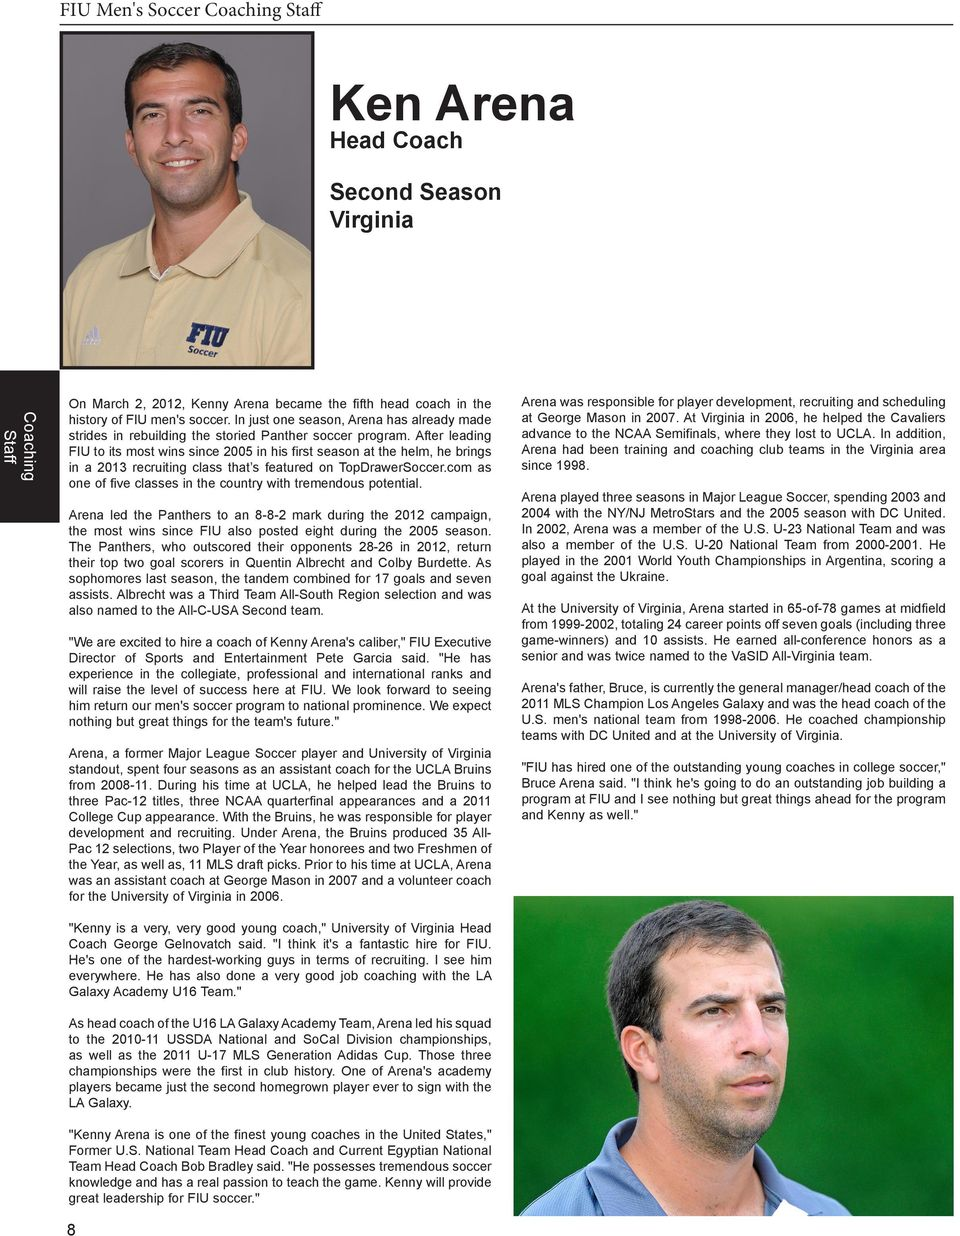 After leading FIU to its most wins since 2005 in his first season at the helm, he brings in a 2013 recruiting class that s featured on TopDrawerSoccer.